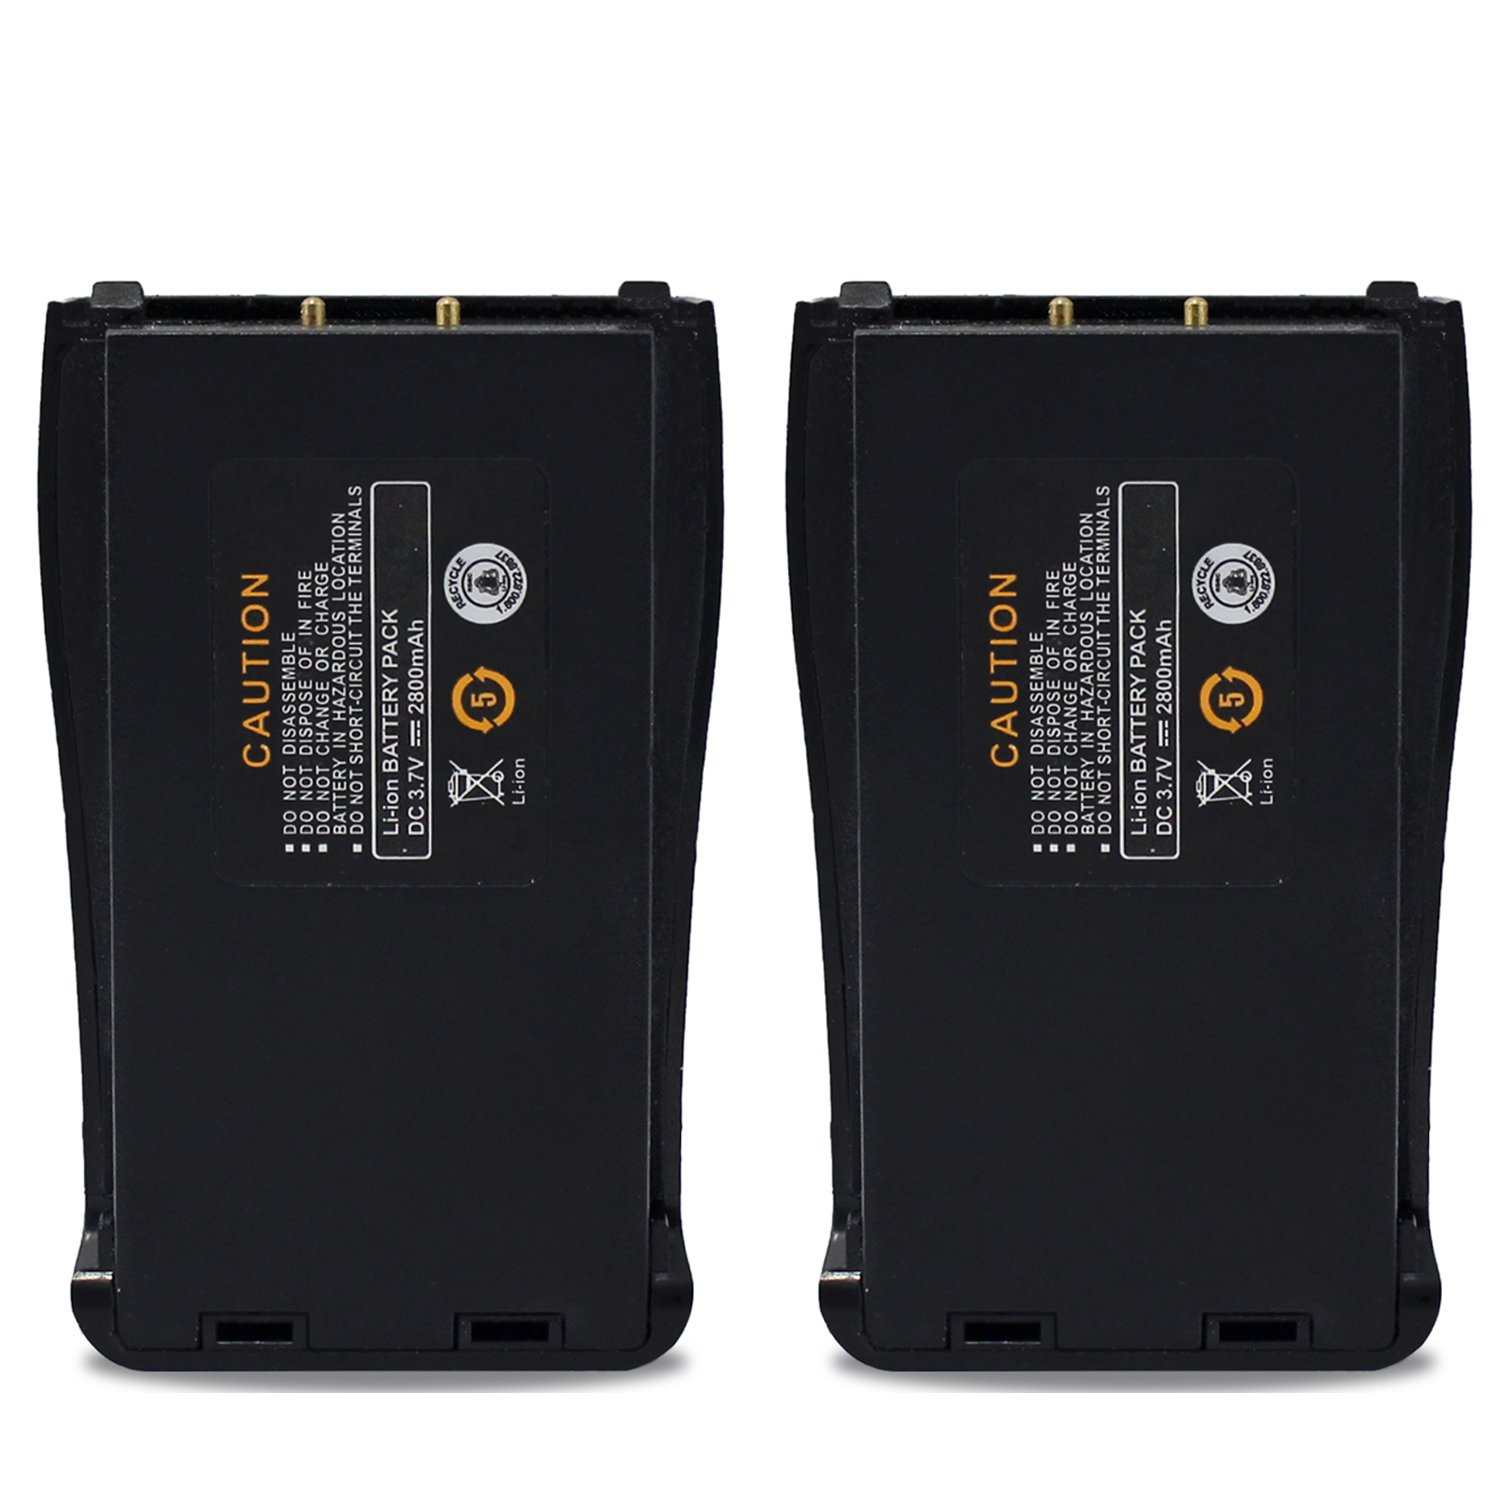 abcGoodefg 2800mAh Replacement rechargeable Li-ion Battery Pack for Baofeng Two way radio 888S 777S 666S H777 Walkie Talkies (2 PCS)